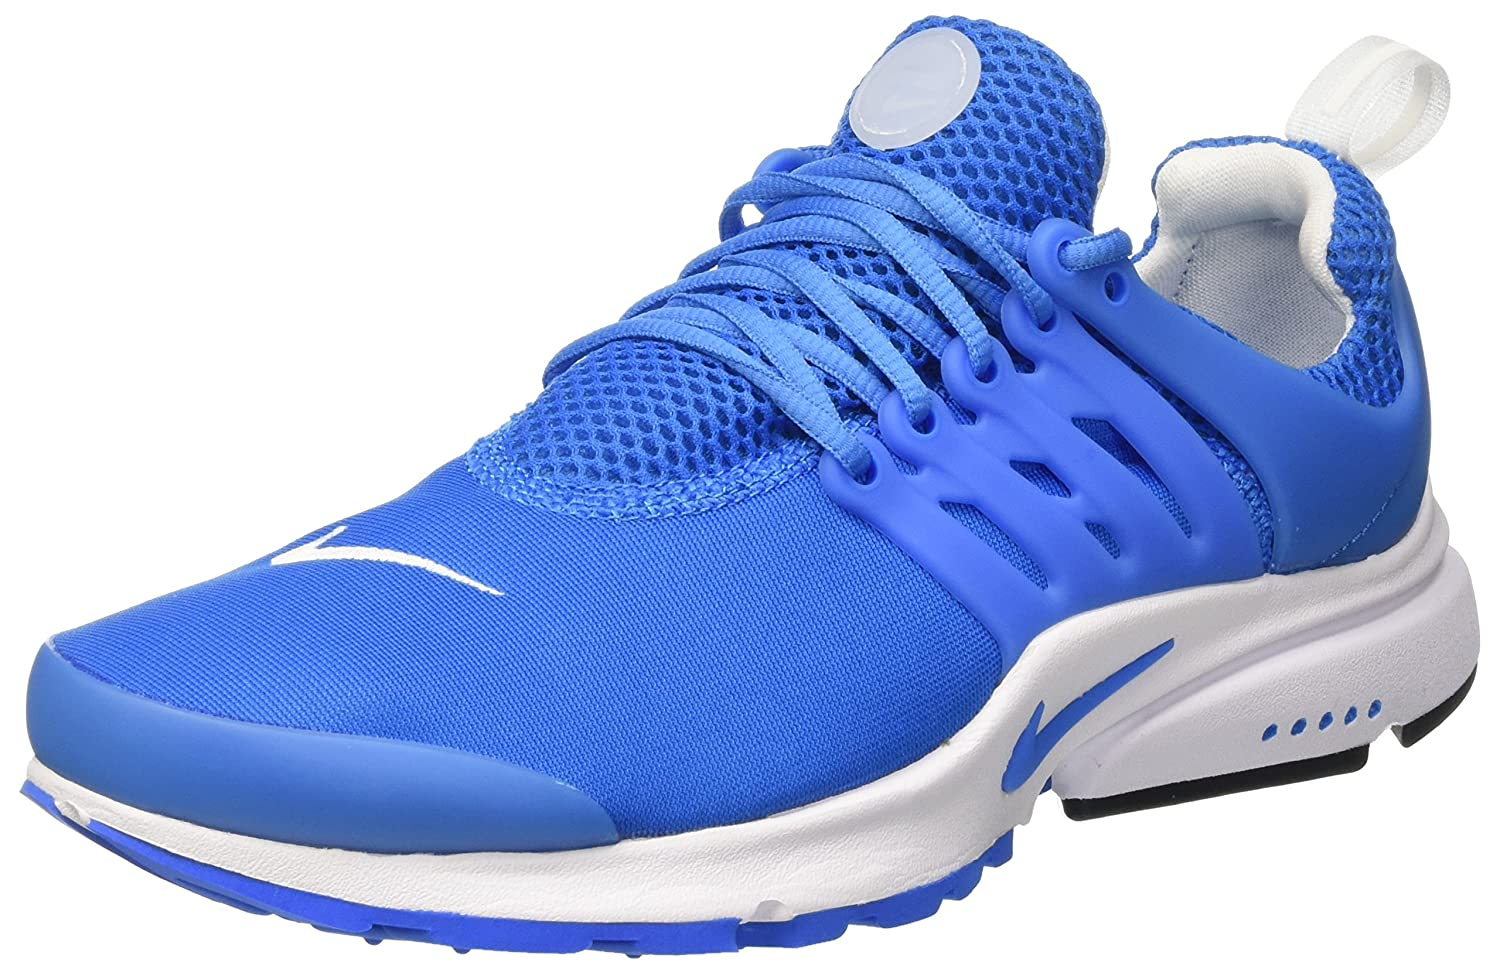 Nike Herren Air Presto Essential Trainer  46 EU|T眉rkis (Photo Blue/Photo Blue/White/Black)